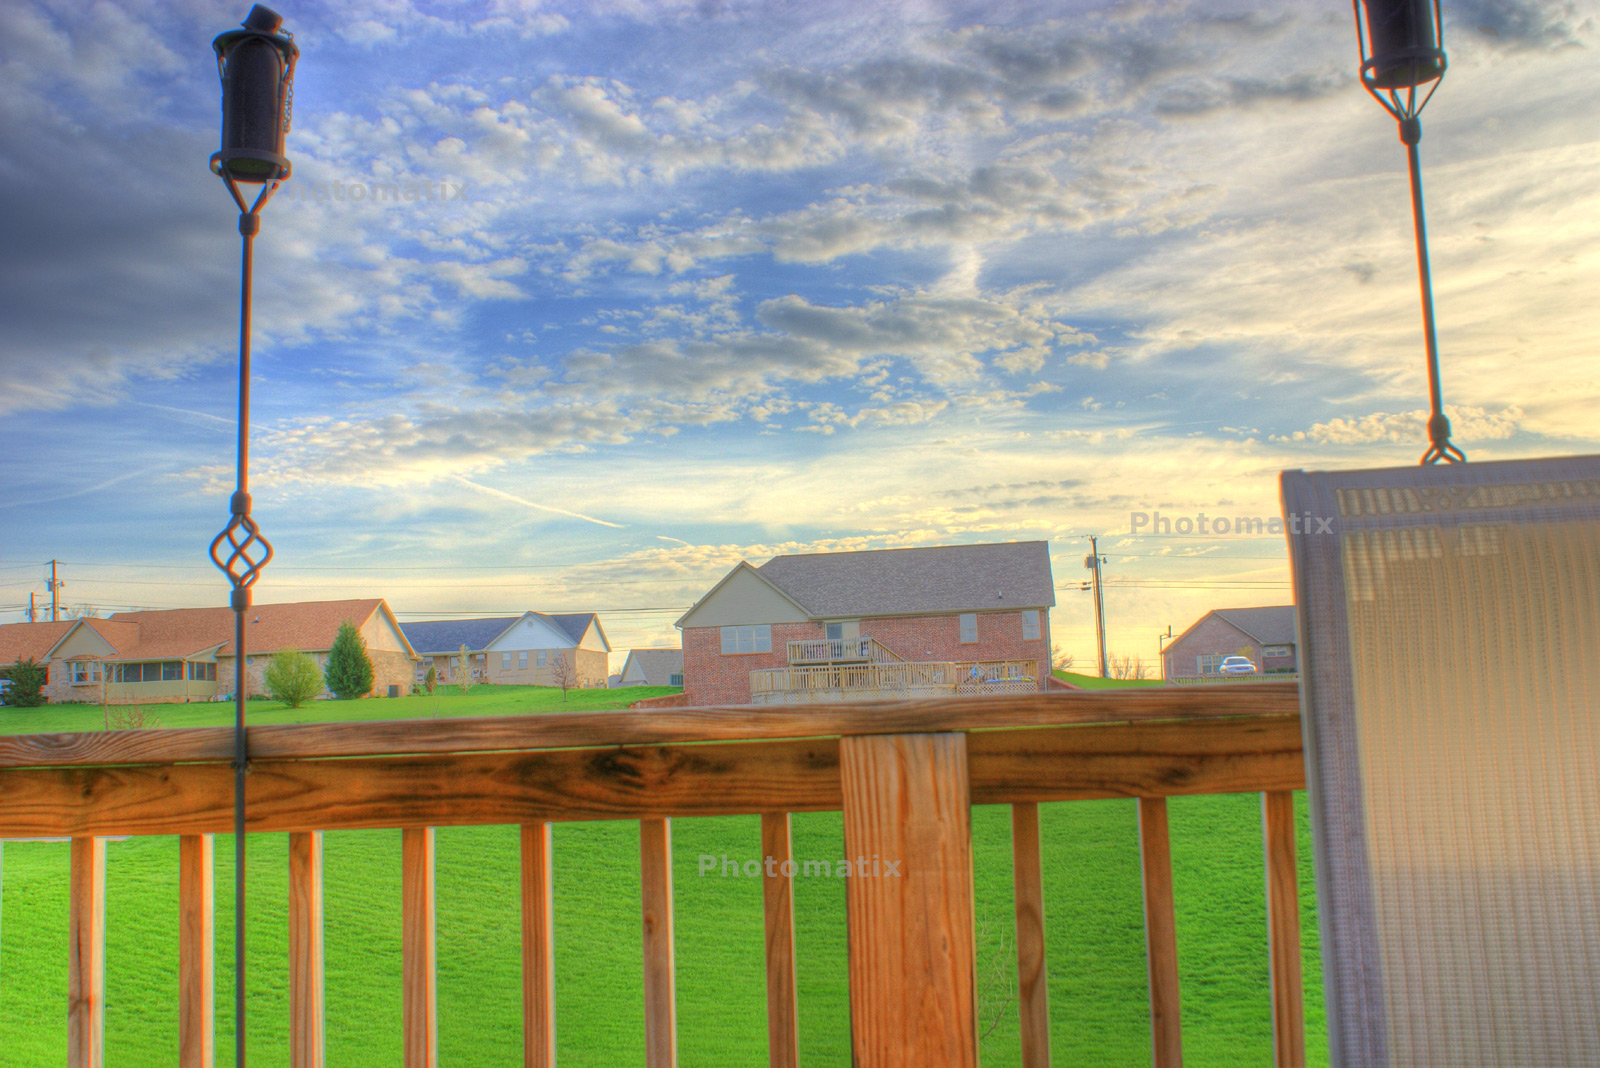 My First HDR shot.